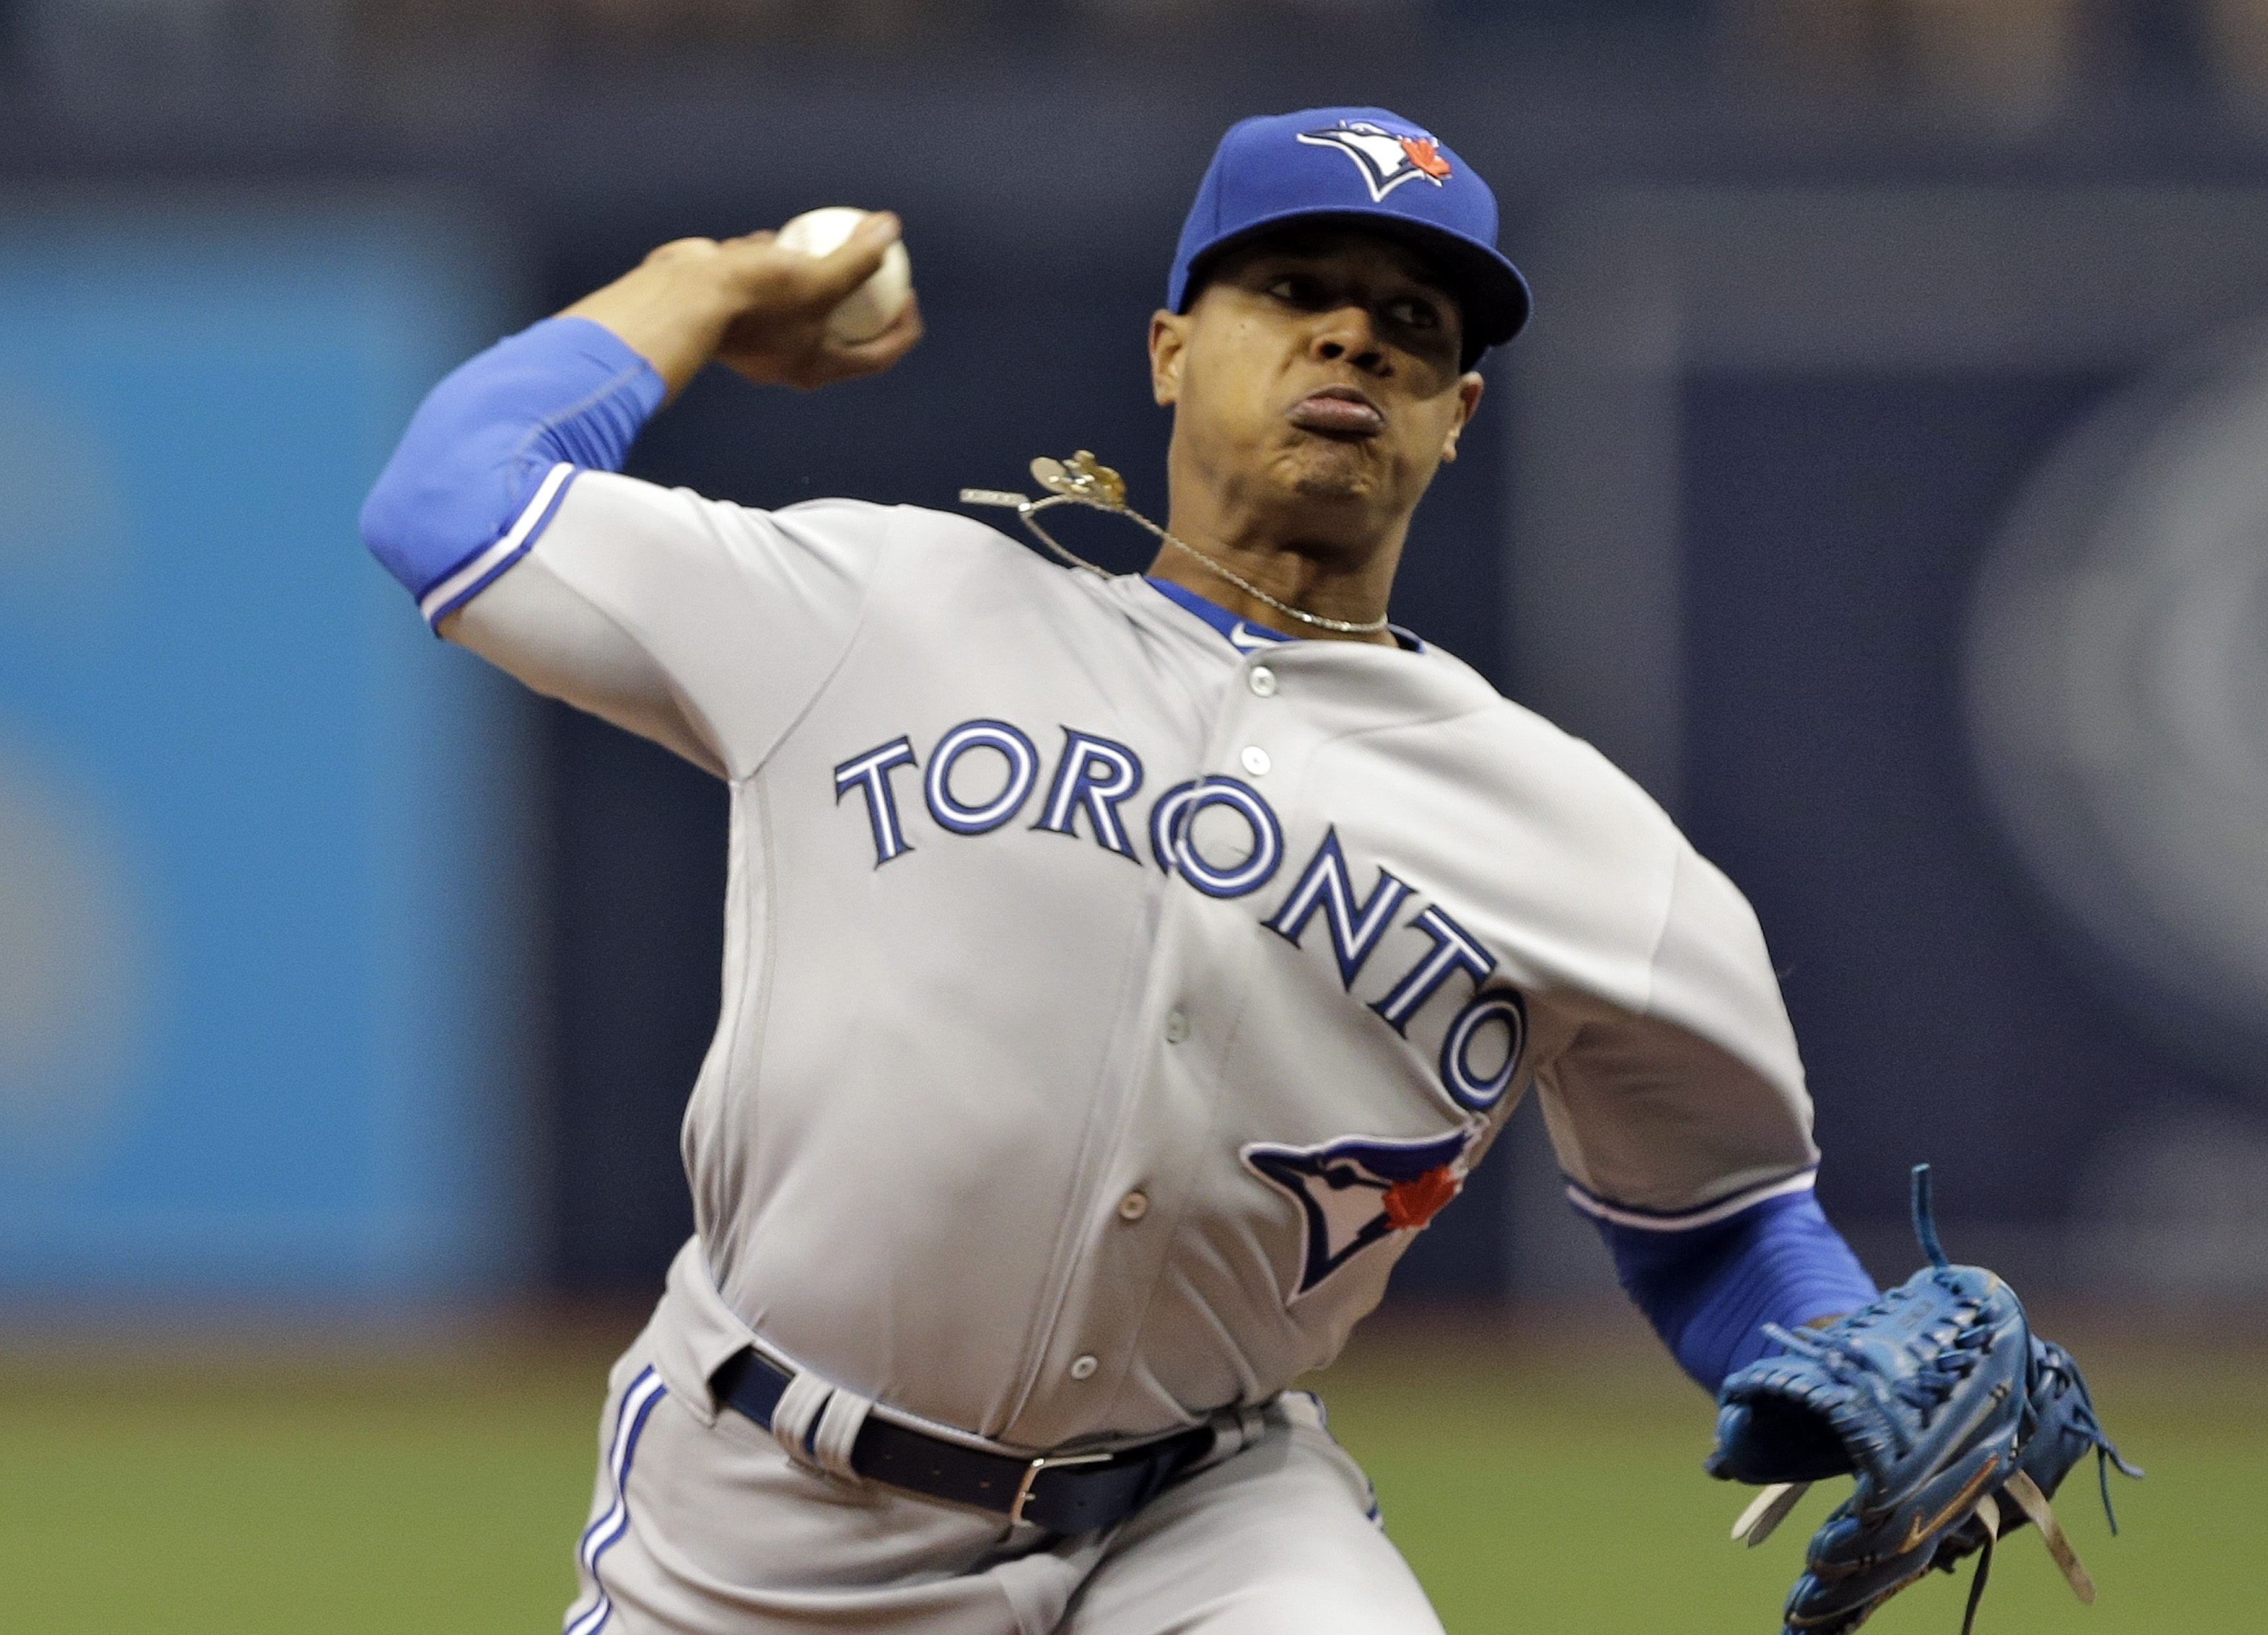 Rogers May Dump Toronto Blue Jays